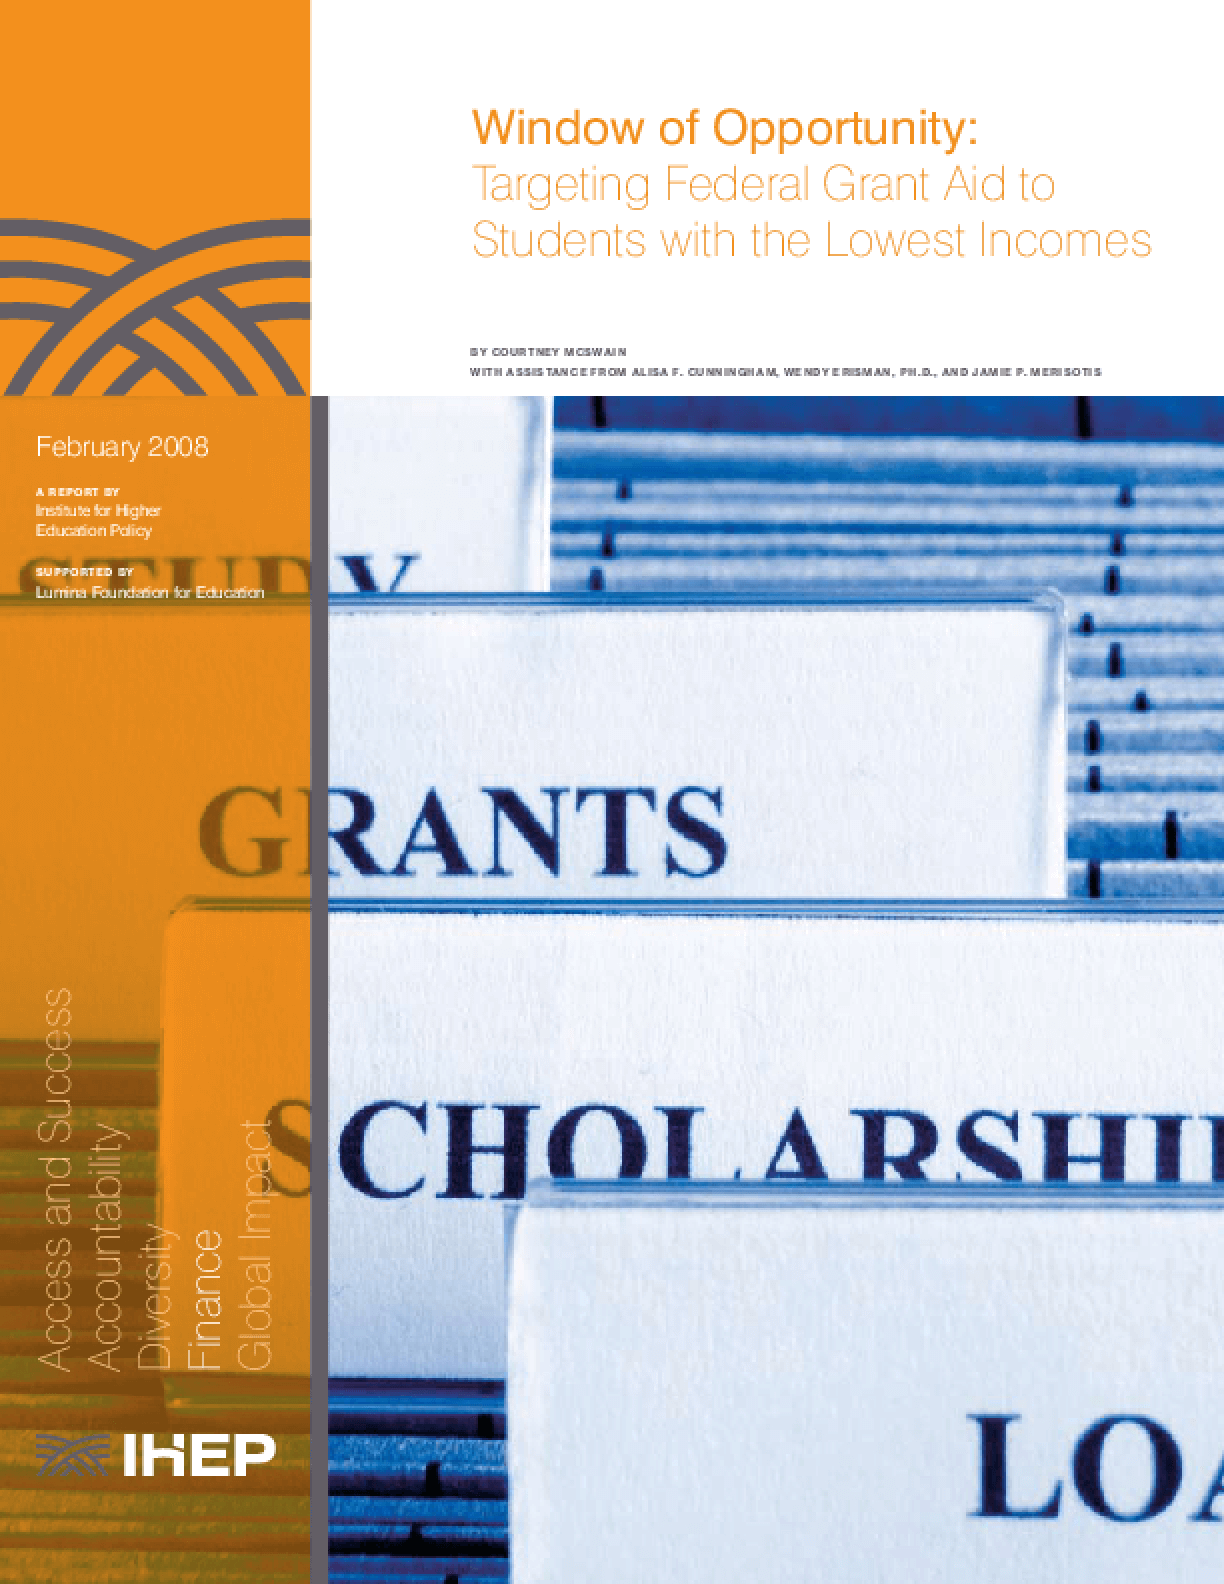 Window of Opportunity: Targeting Federal Grant Aid to Students With the Lowest Incomes